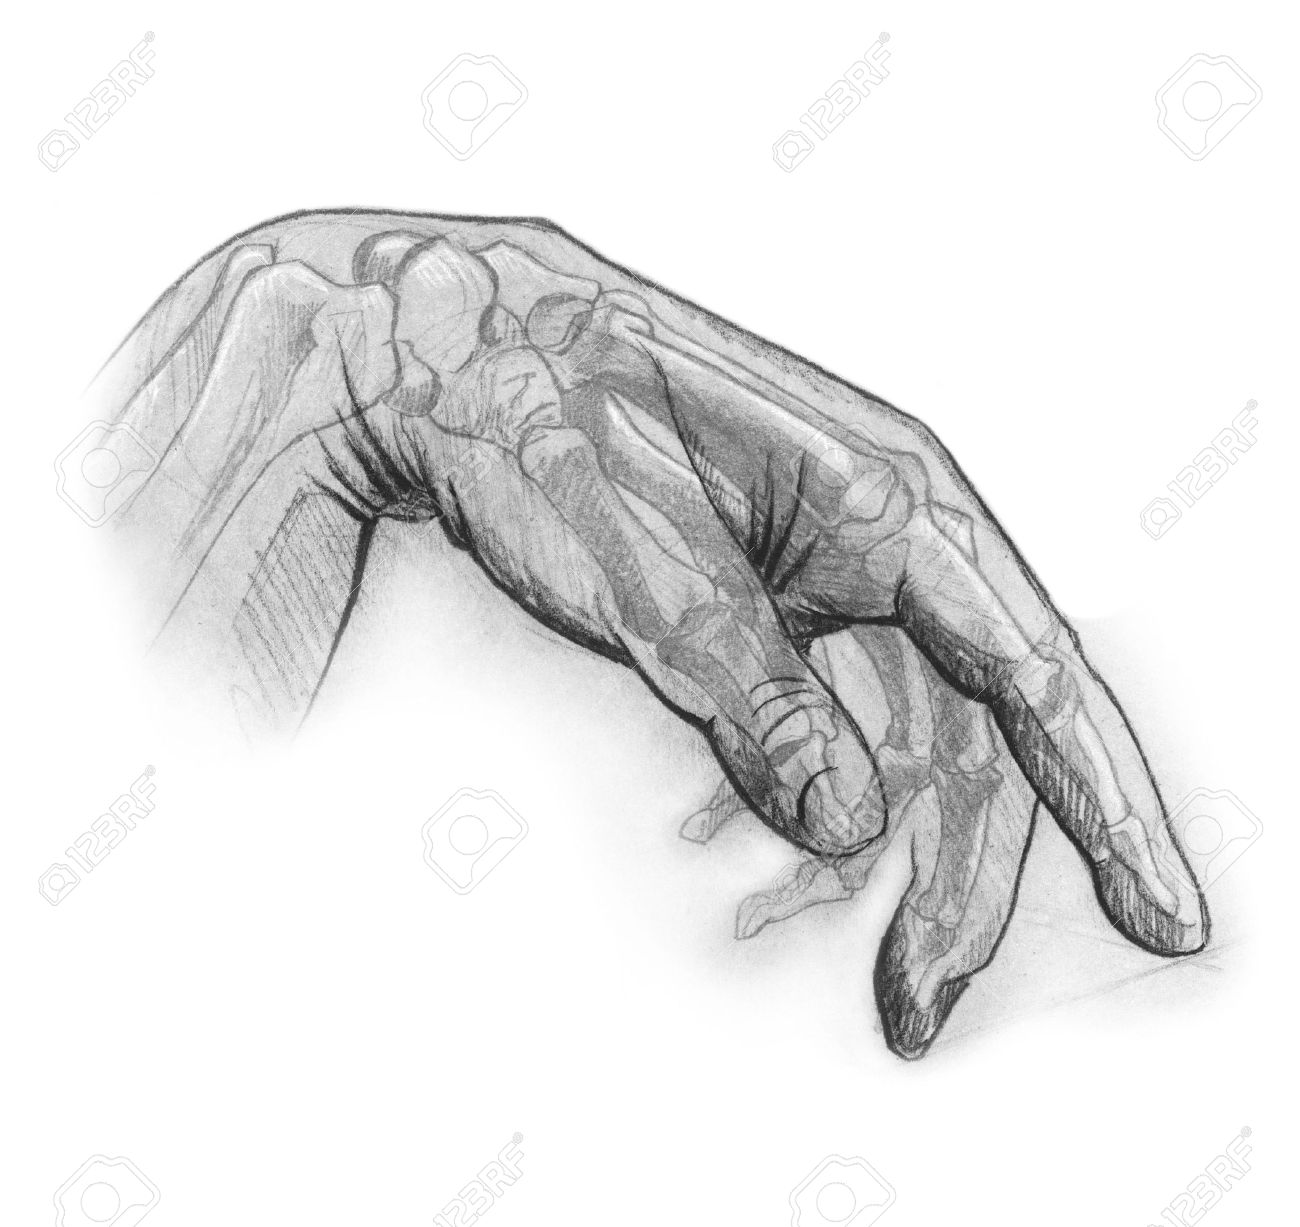 Pencil sketch of the human hand illustrates the internal and